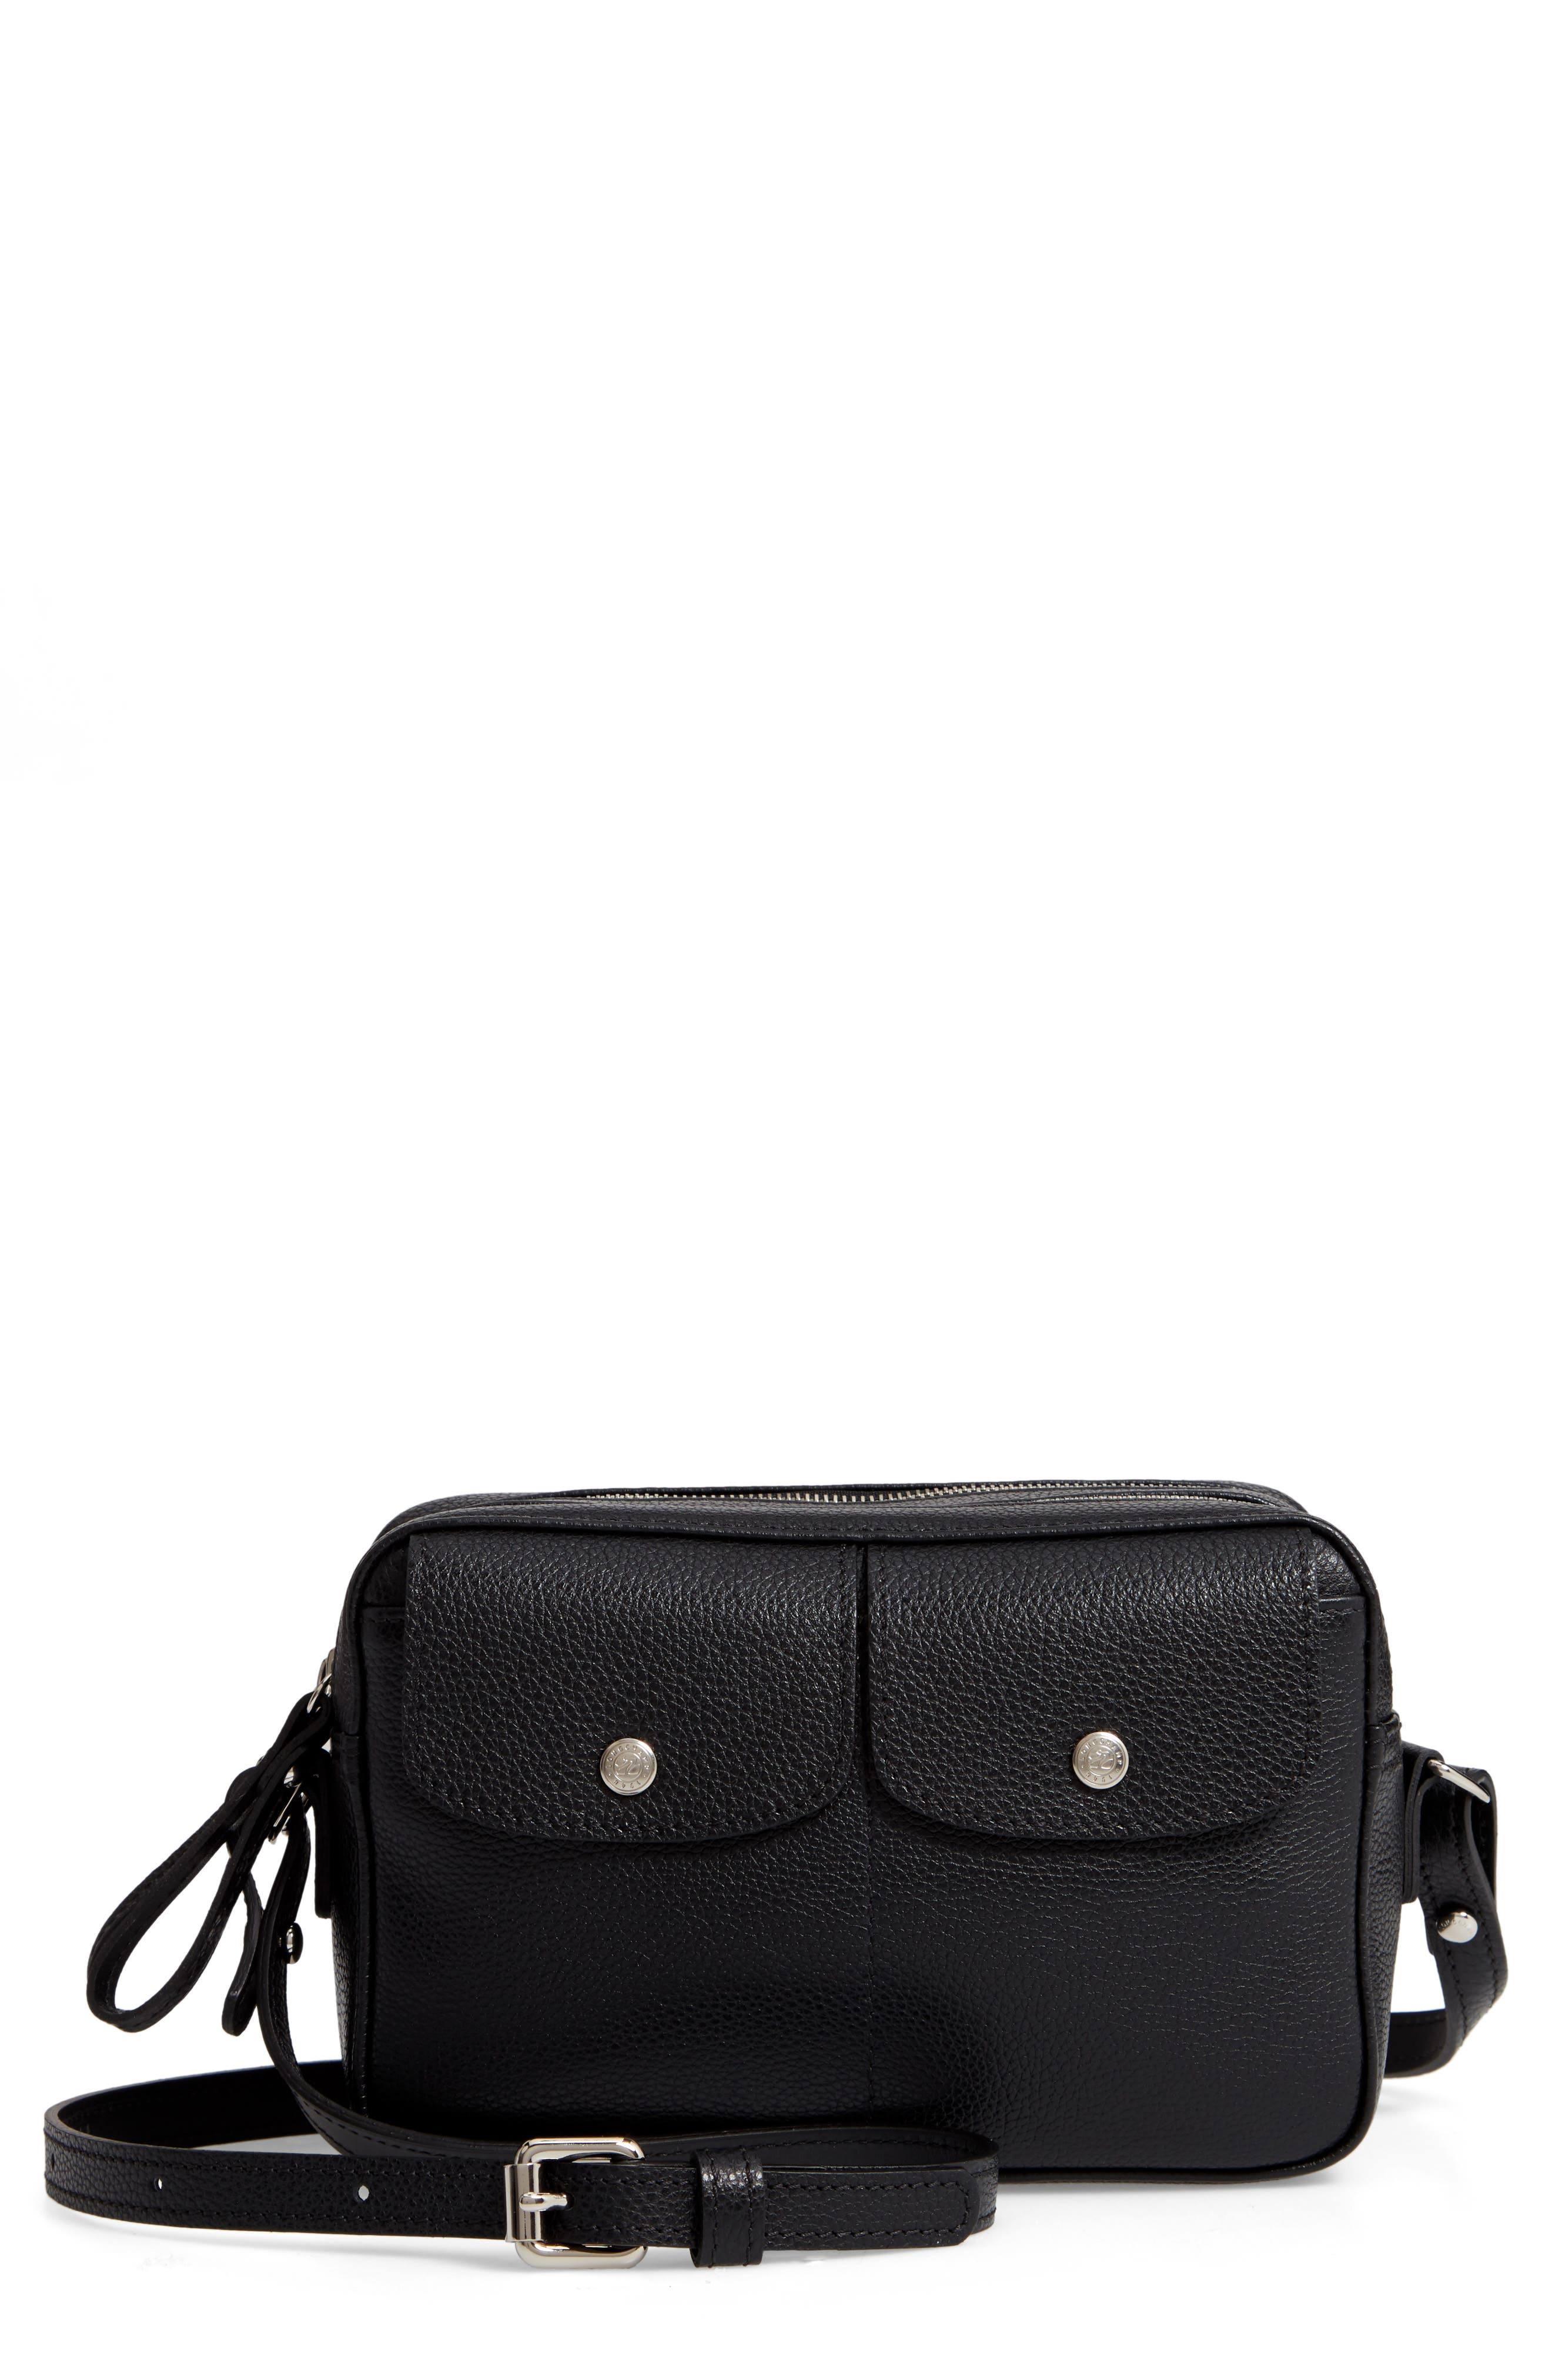 Le Foulonné Leather Camera Bag,                             Main thumbnail 1, color,                             BLACK